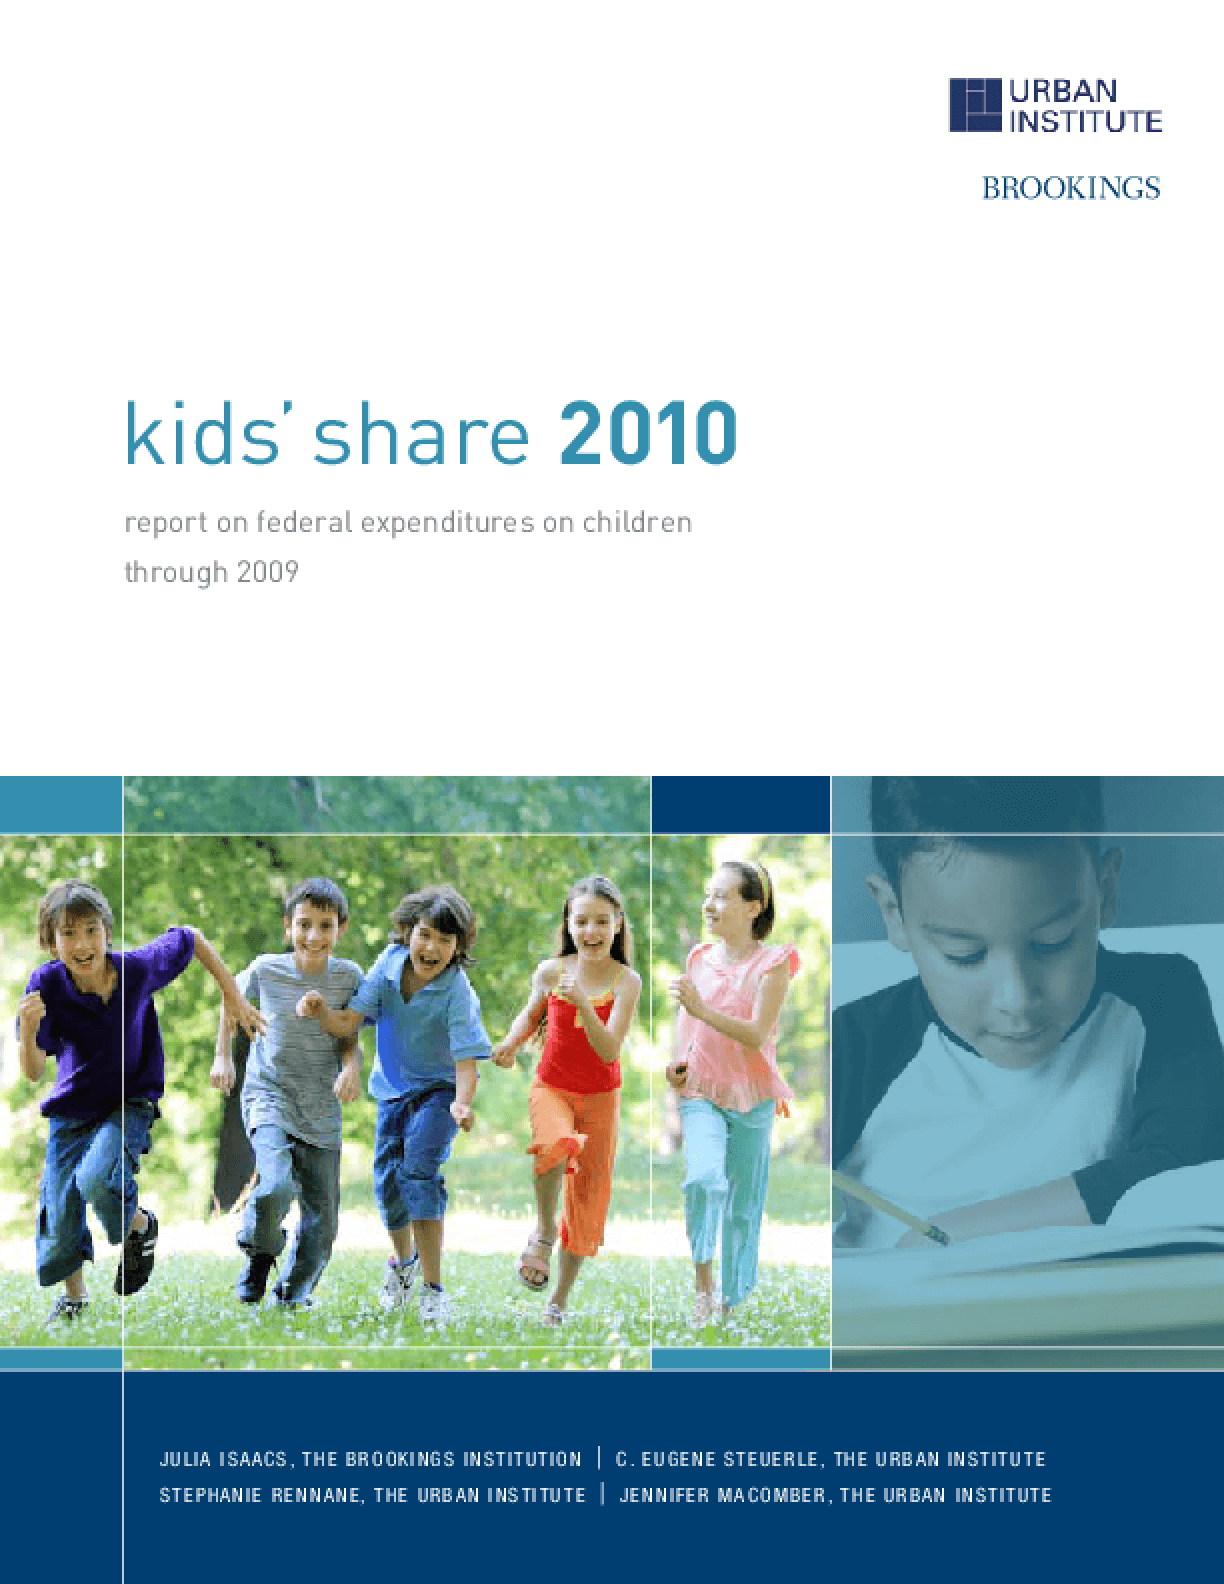 Kids' Share 2010: Report on Federal Expenditures on Children